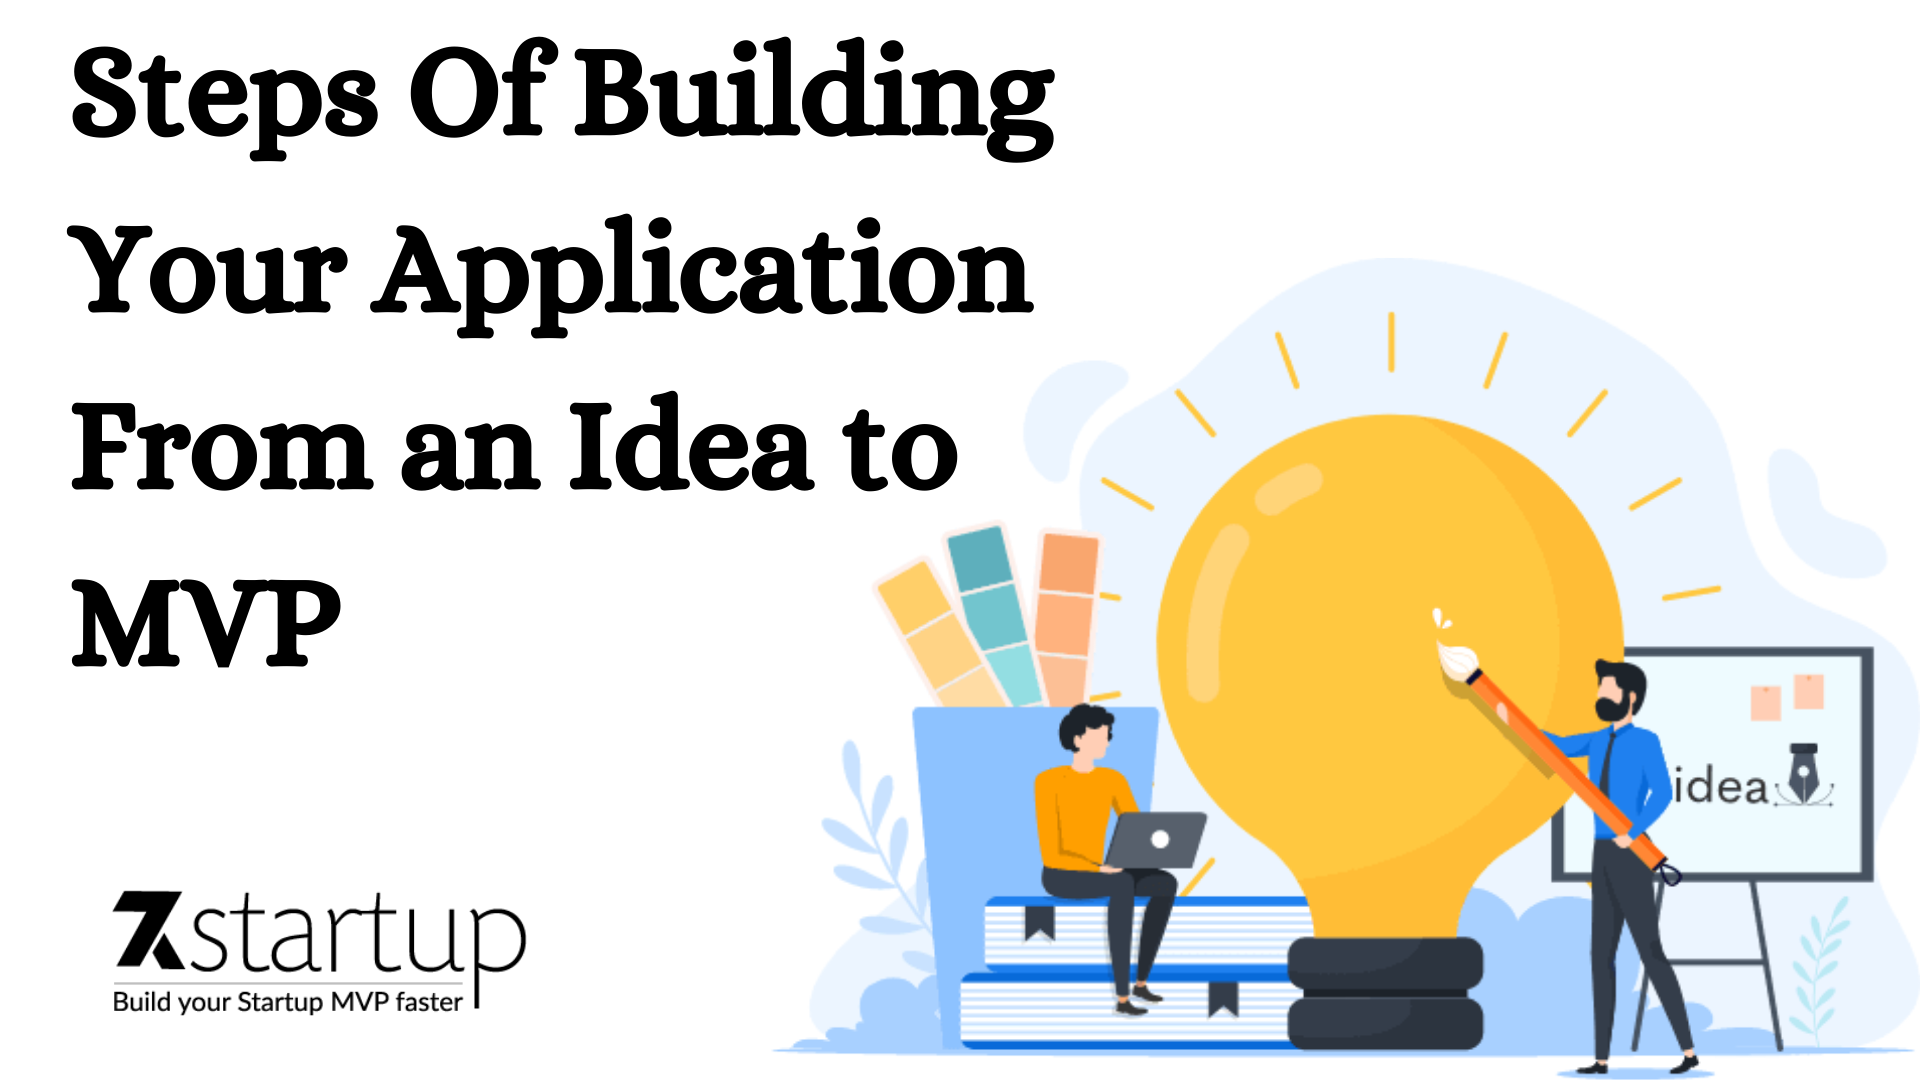 Steps Of Building Your Application From an Idea to MVP – 7k startup